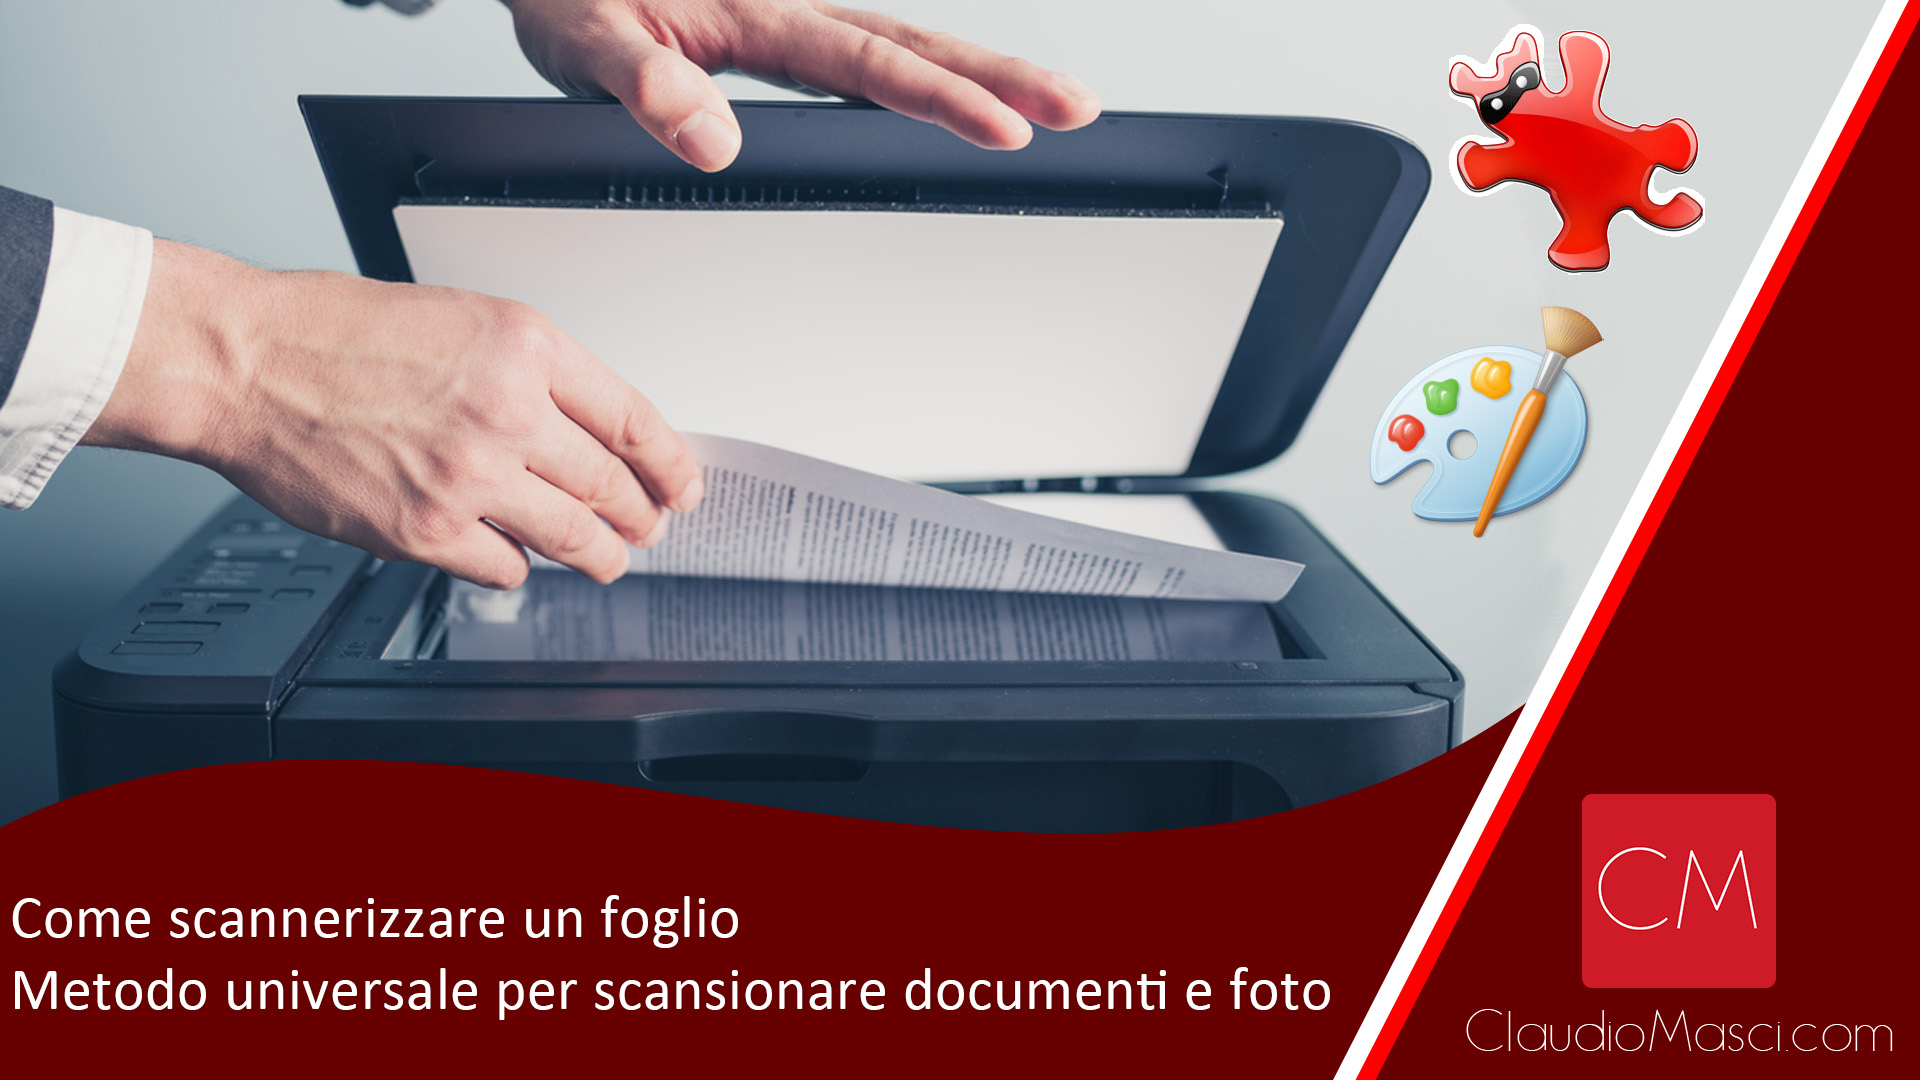 Come scannerizzare un foglio – Metodo universale per scansionare documenti e foto